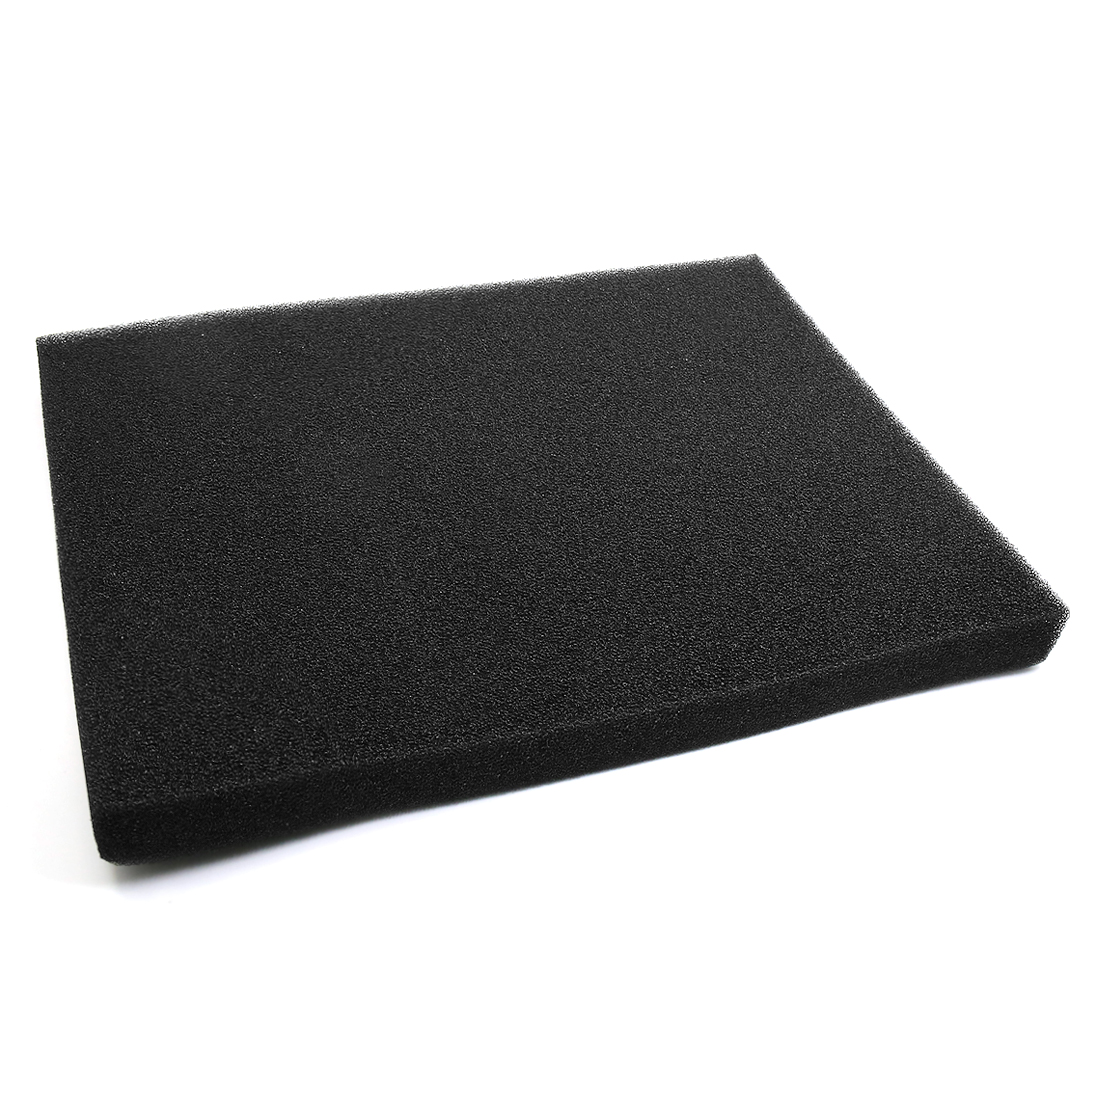 "Black Rectangular Bio Absorbent Filter Sponge for Betta Aquarium 23.6"" x 17.7"""